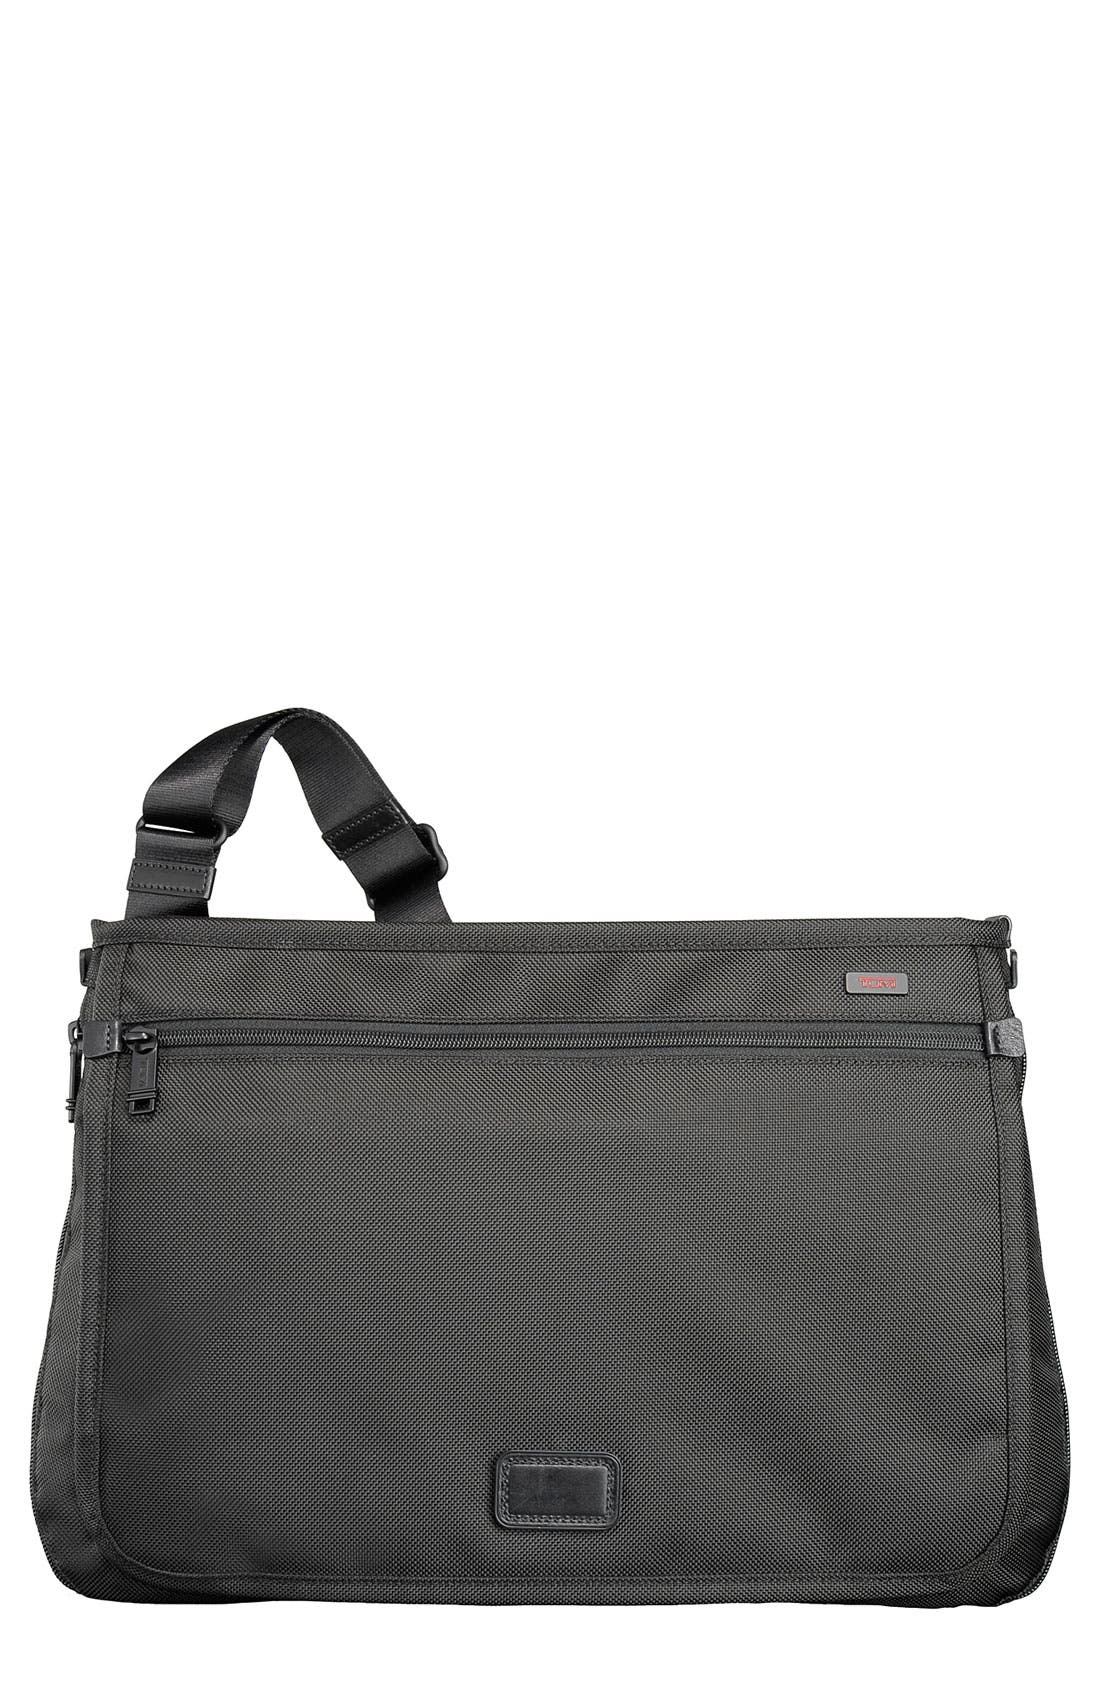 Main Image - Tumi 'Alpha' Slim Messenger Bag